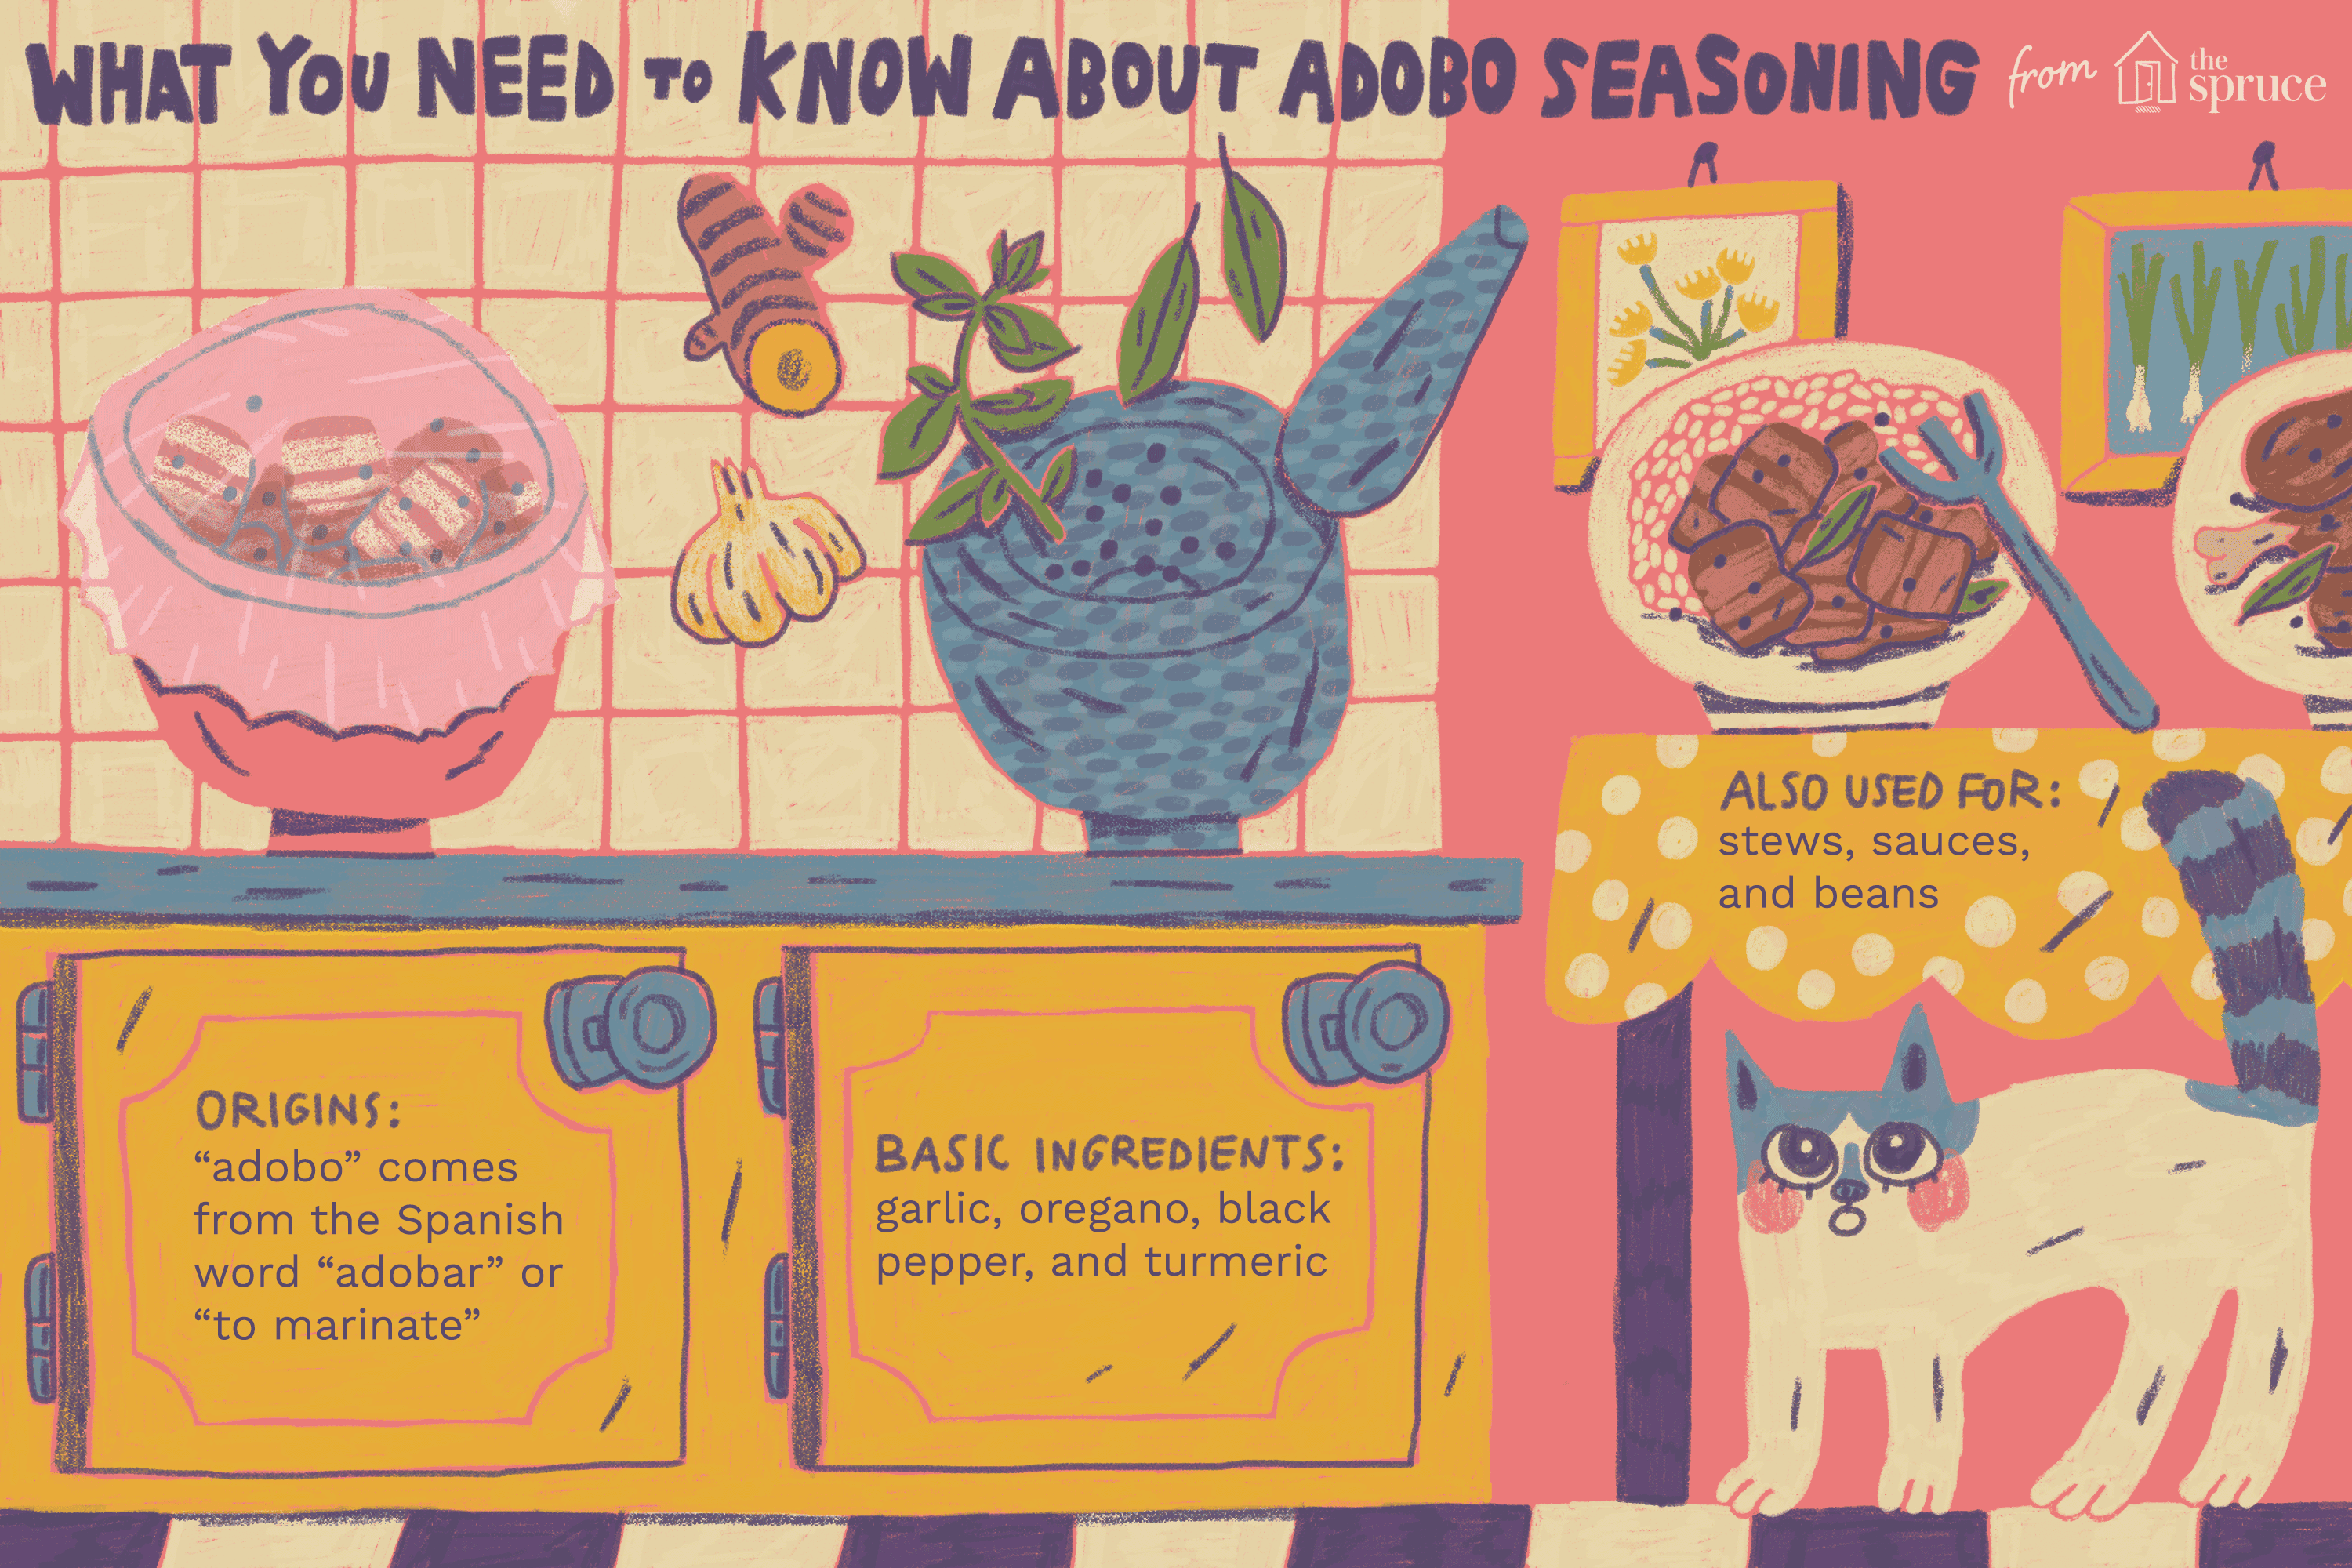 Illustration of kitchen with information about adobo seasoning